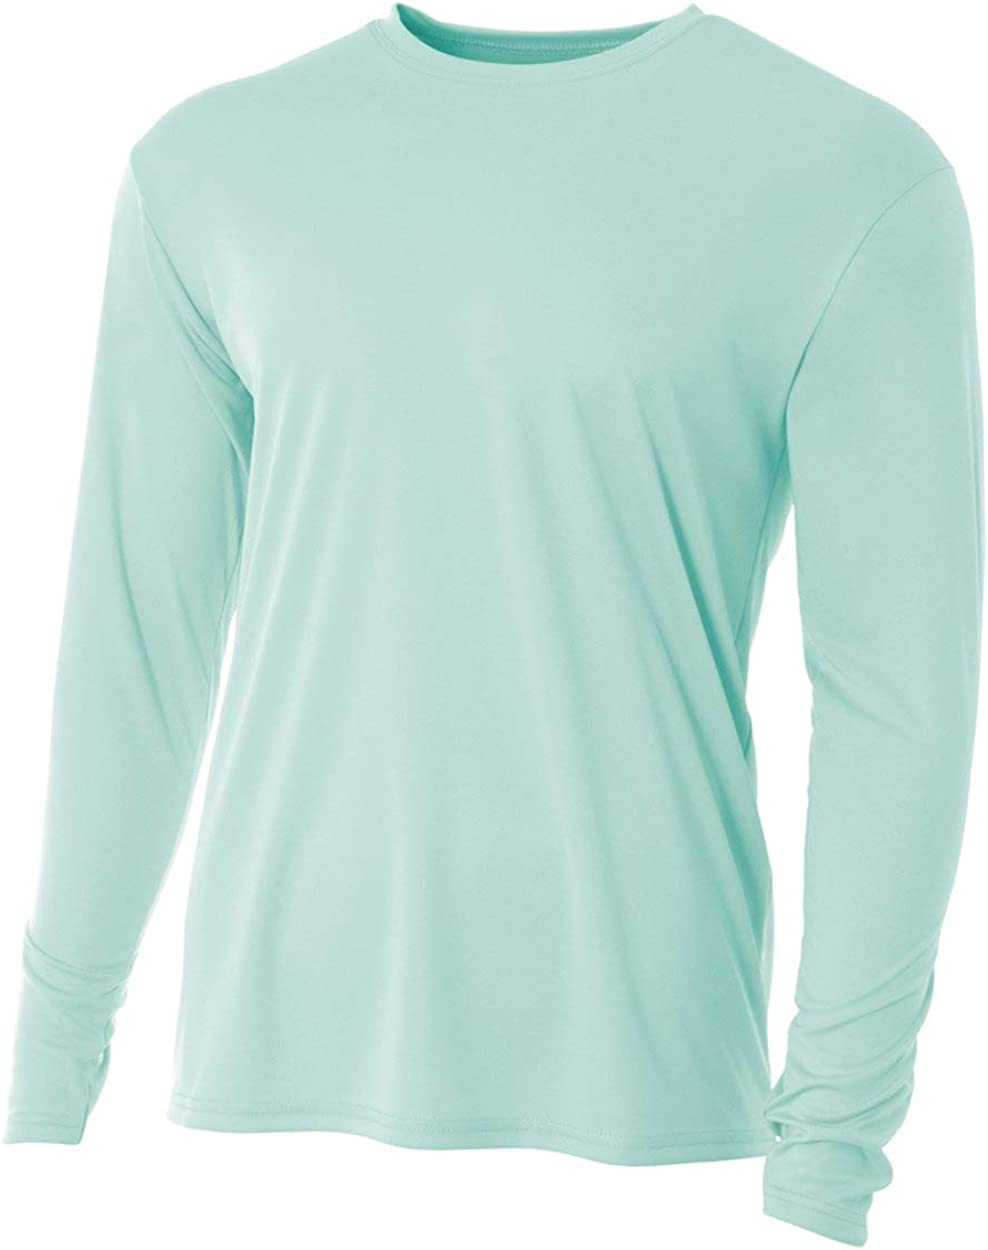 A4 Men's Cooling Performance Long Sleeve Crew